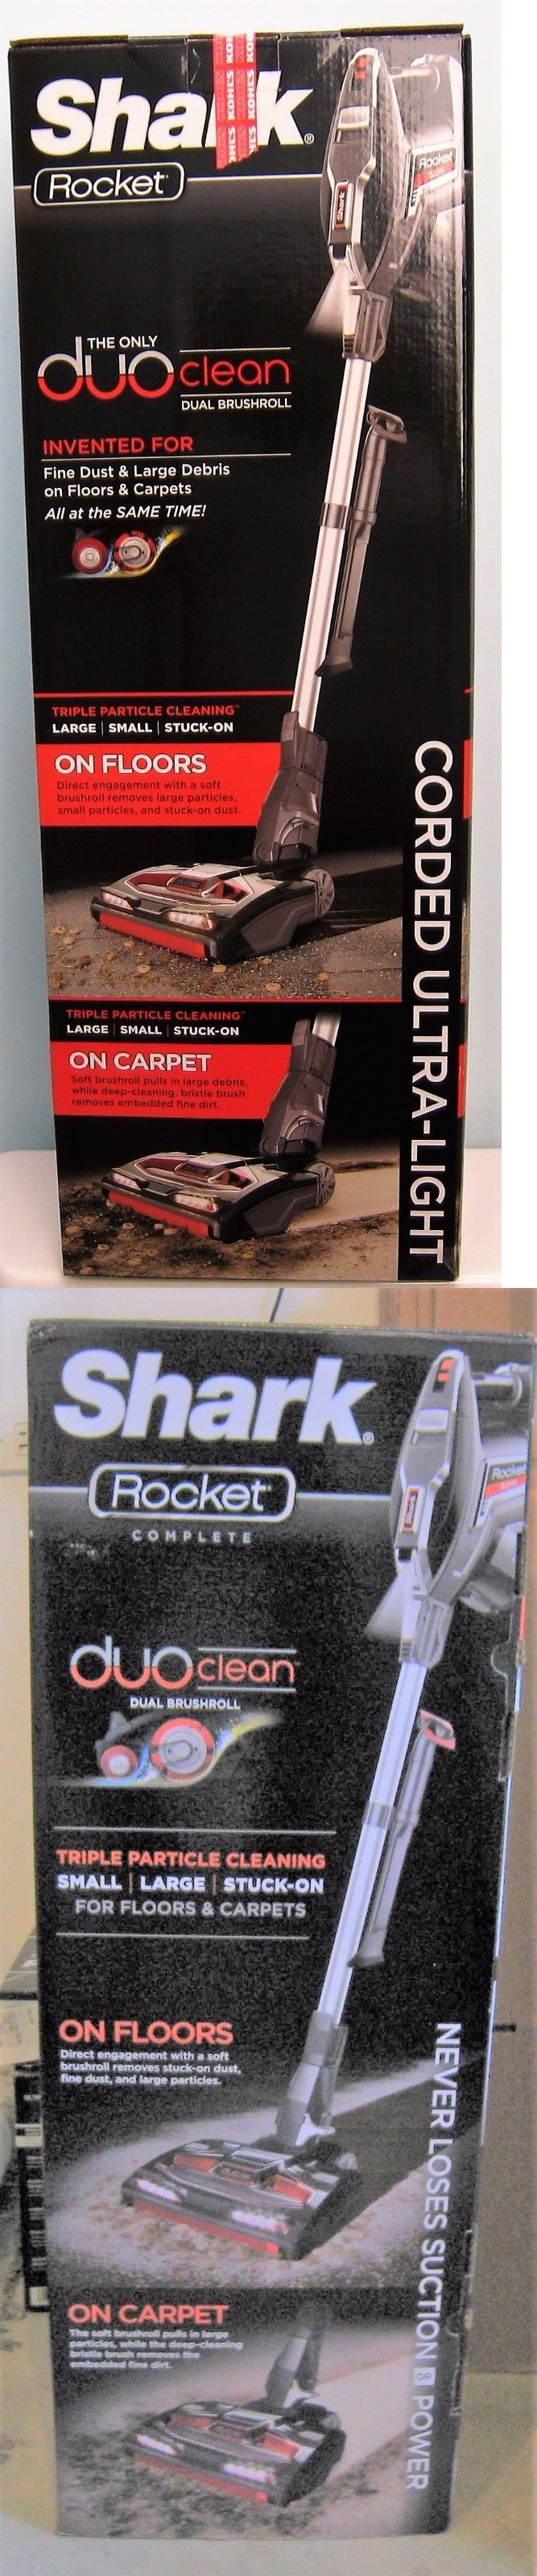 Vacuum Cleaners 20614: Shark Rocket Hv382 Complete True-Pet Ultra-Light With Duoclean Vacuum -> BUY IT NOW ONLY: $222 on eBay!